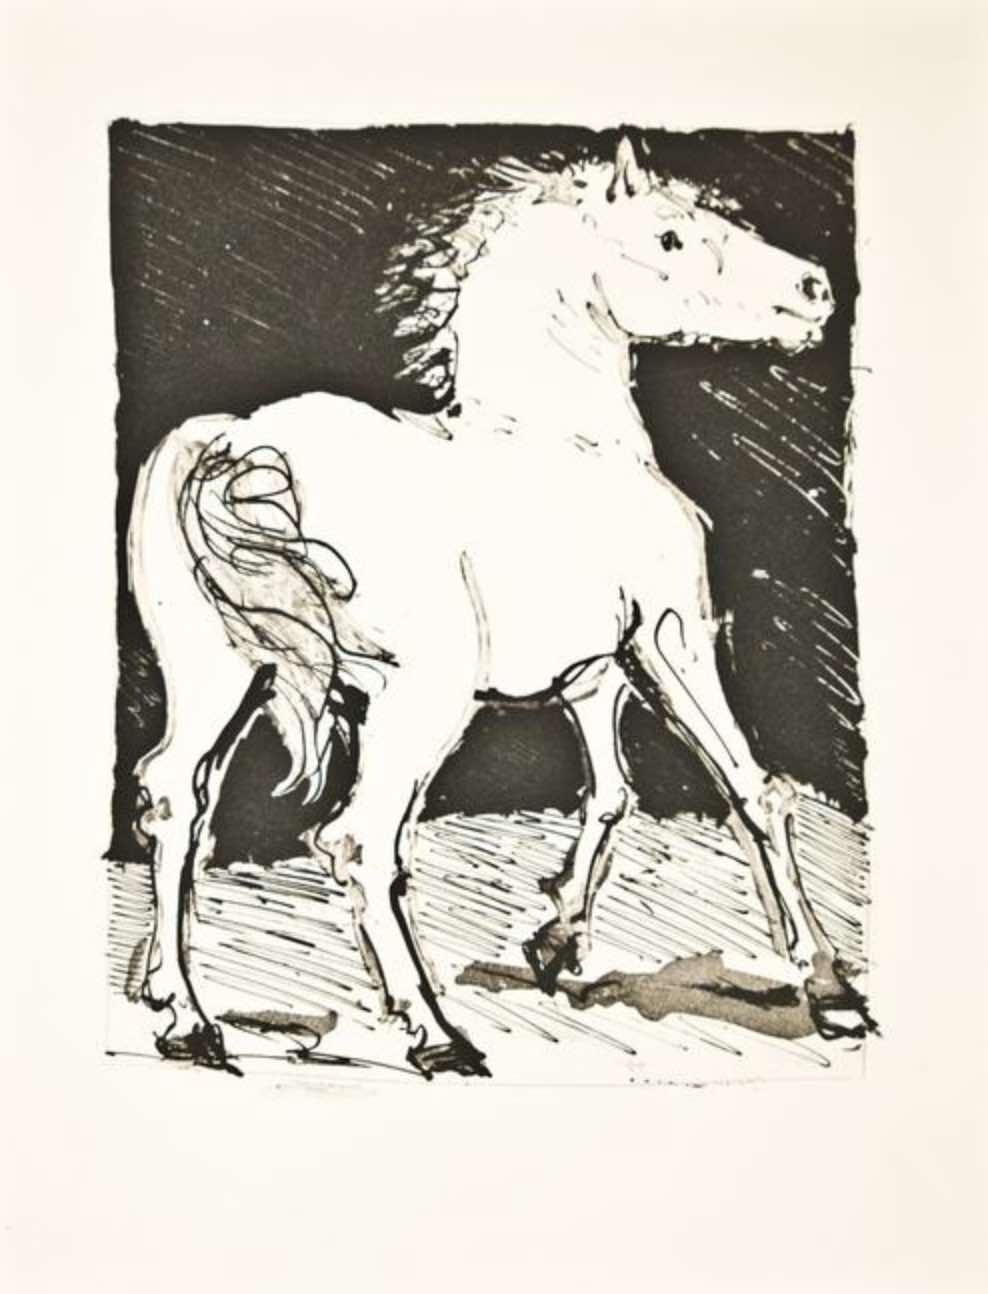 Le Cheval by Picasso